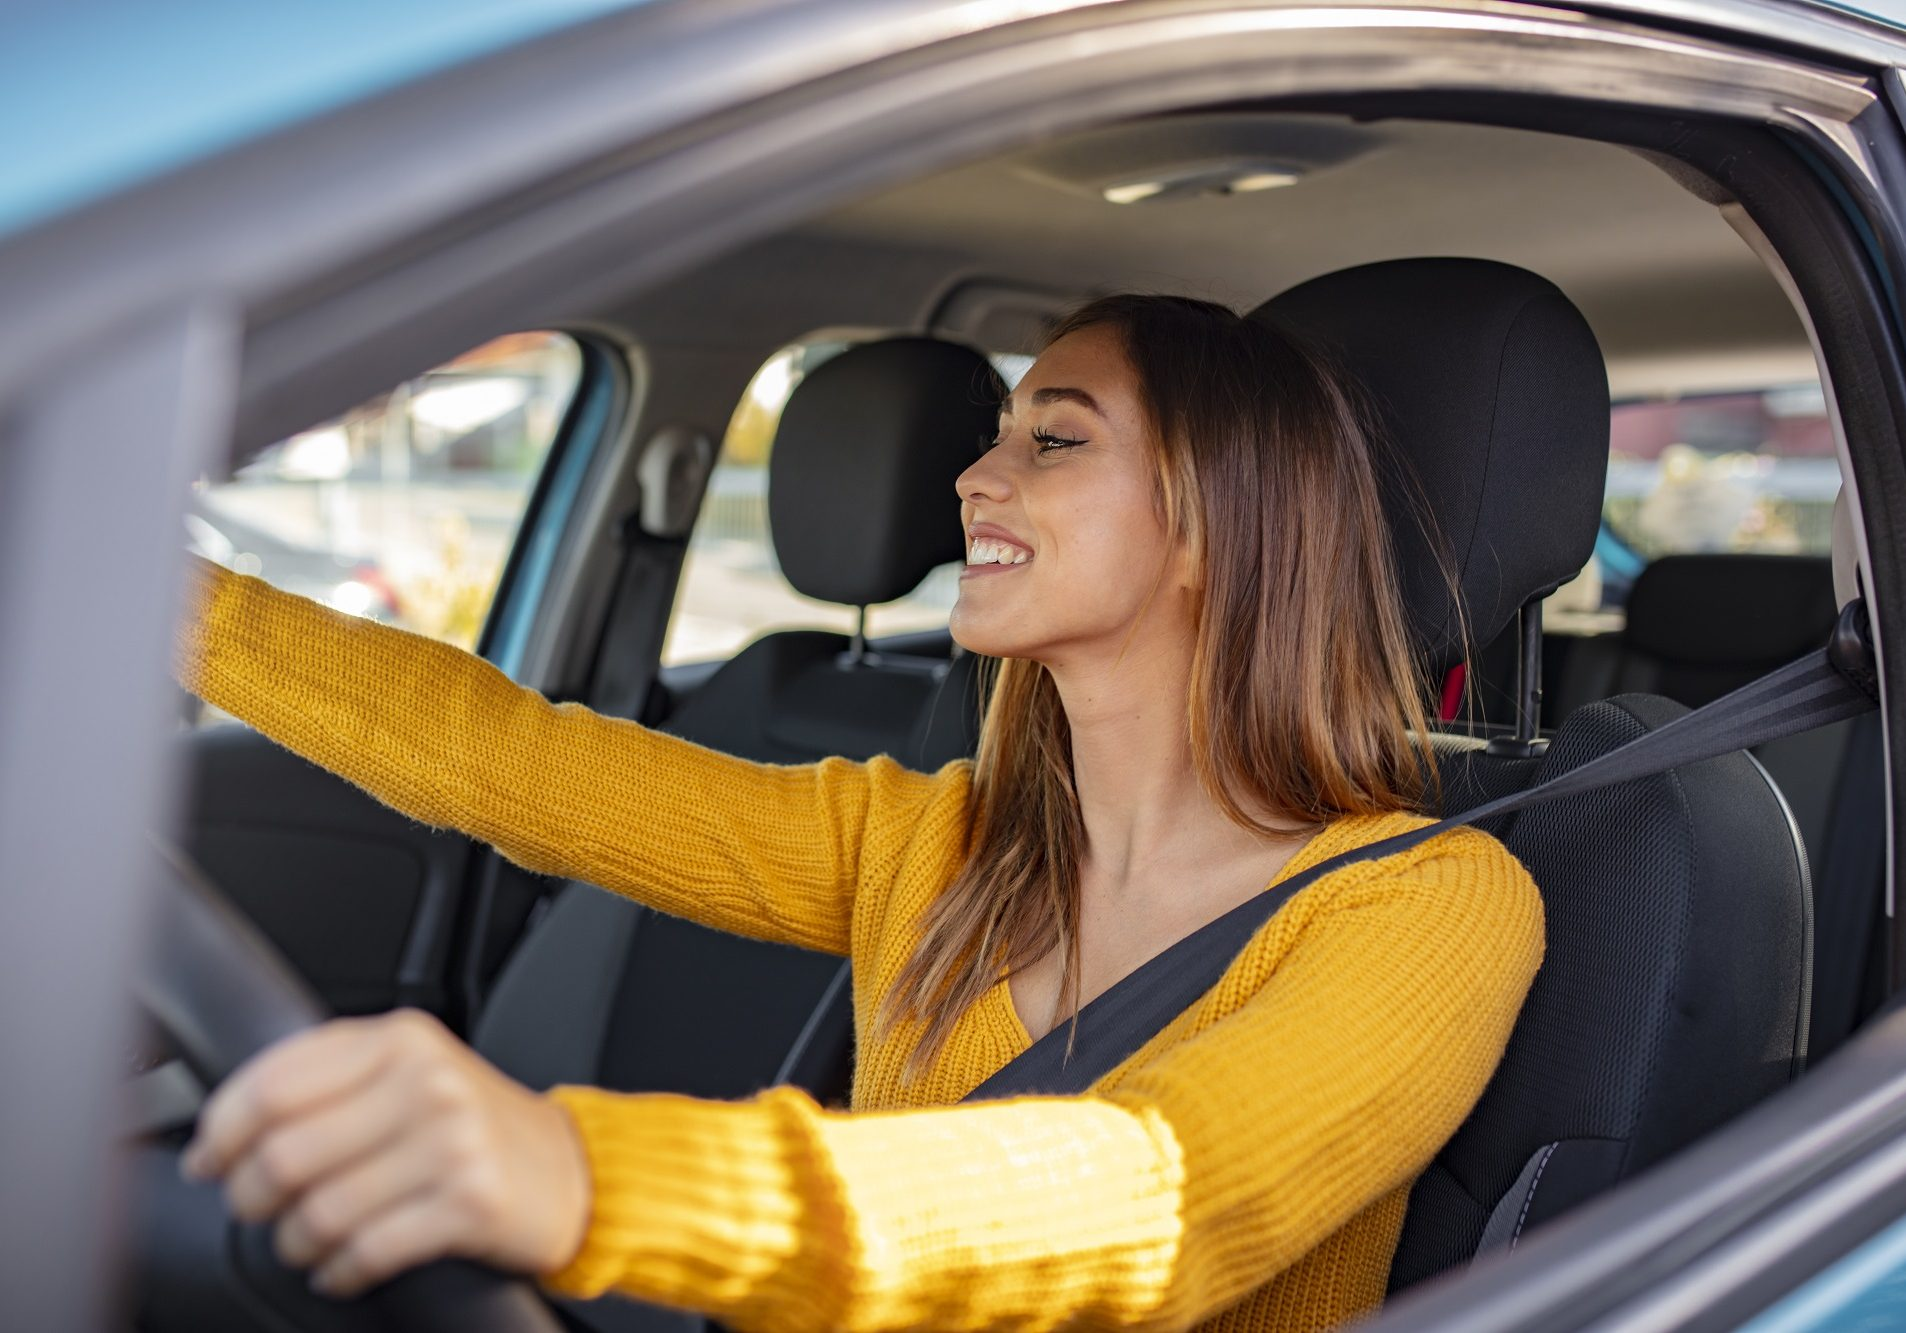 Beautiful female Driver adjusting the Rear Mirror looking at herself. Adjusting the rear view mirror. Woman adjusts the rear view mirror with her hand. Happy young woman driver looking adjusting rear view car mirror